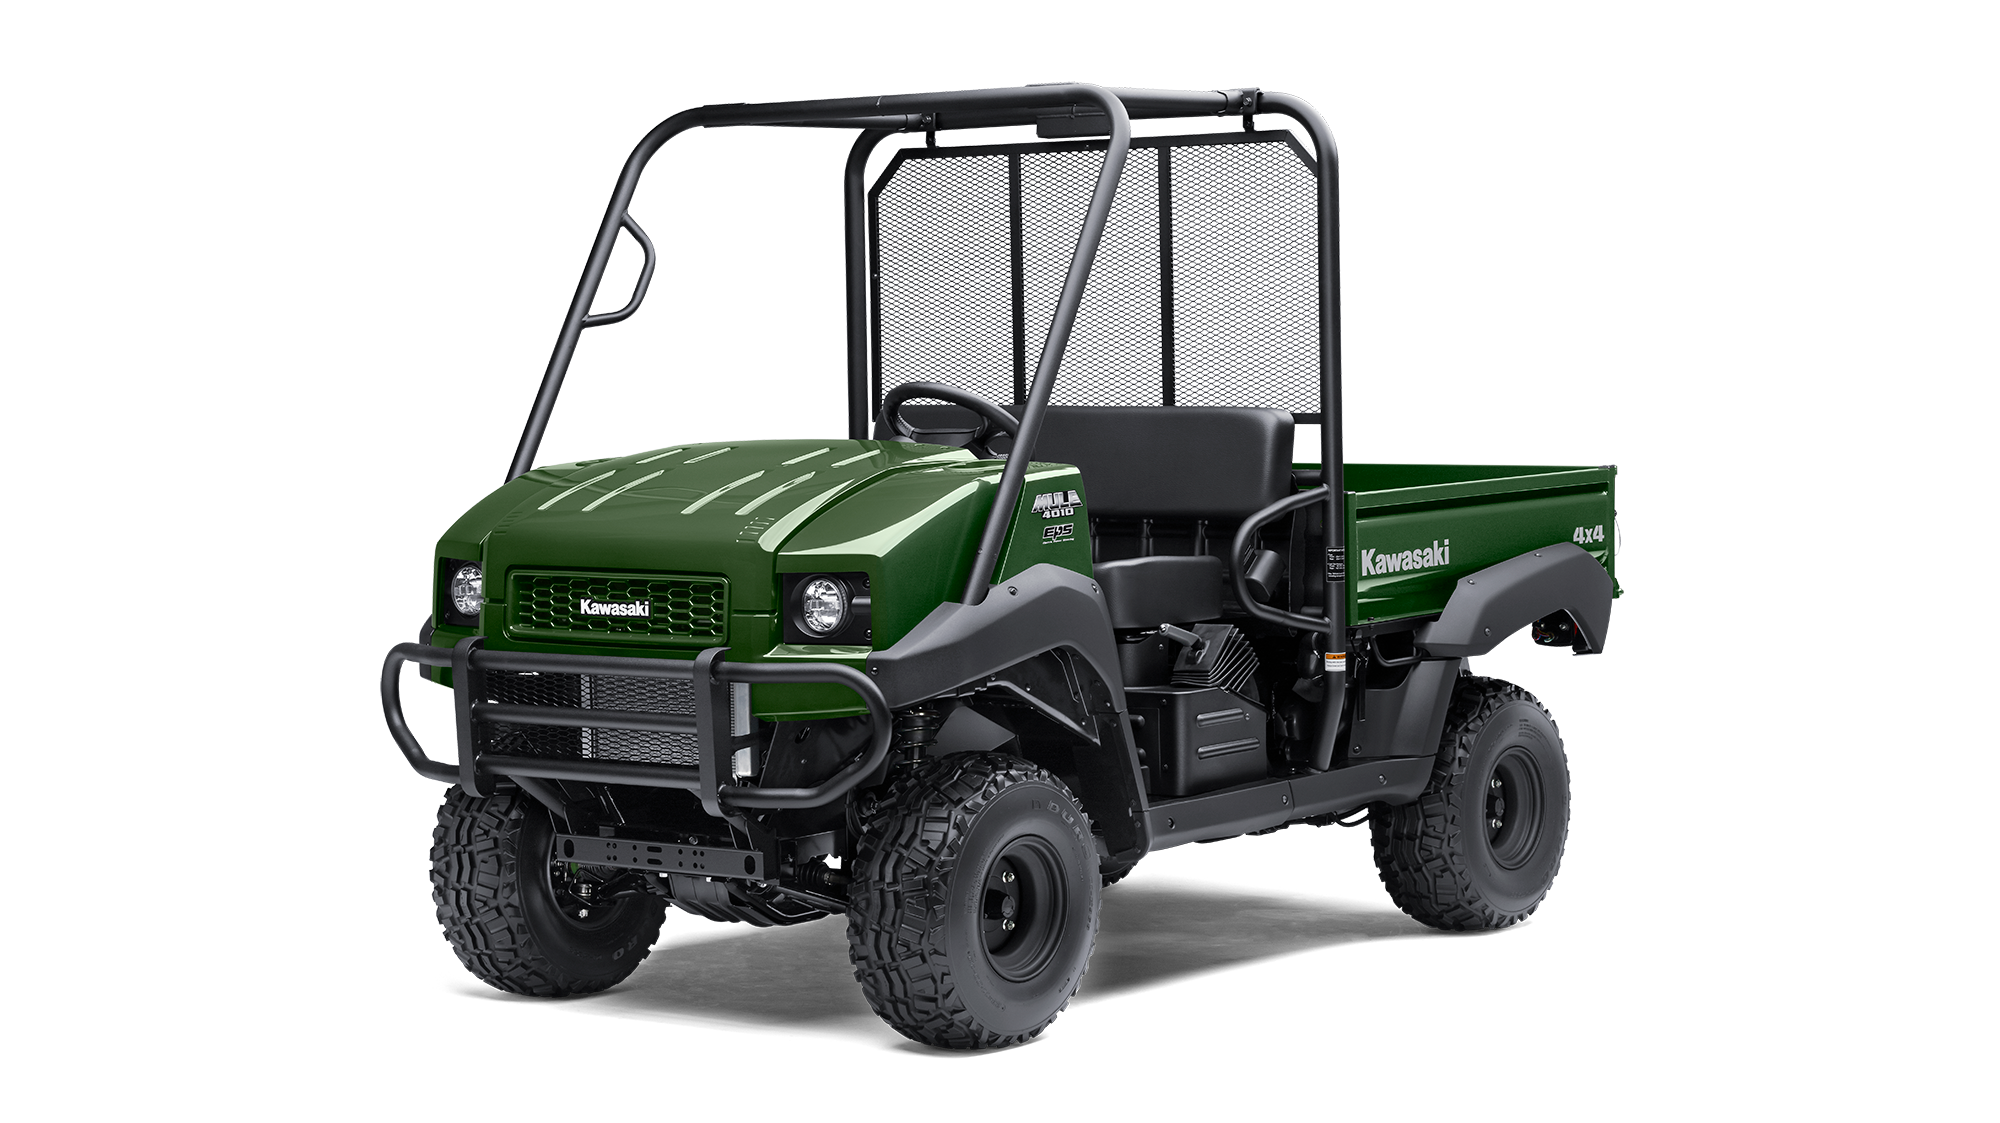 2019 Mule 4010 4x4 Side X By Kawasaki 2016 Cyclone 4100 Wiring Diagram